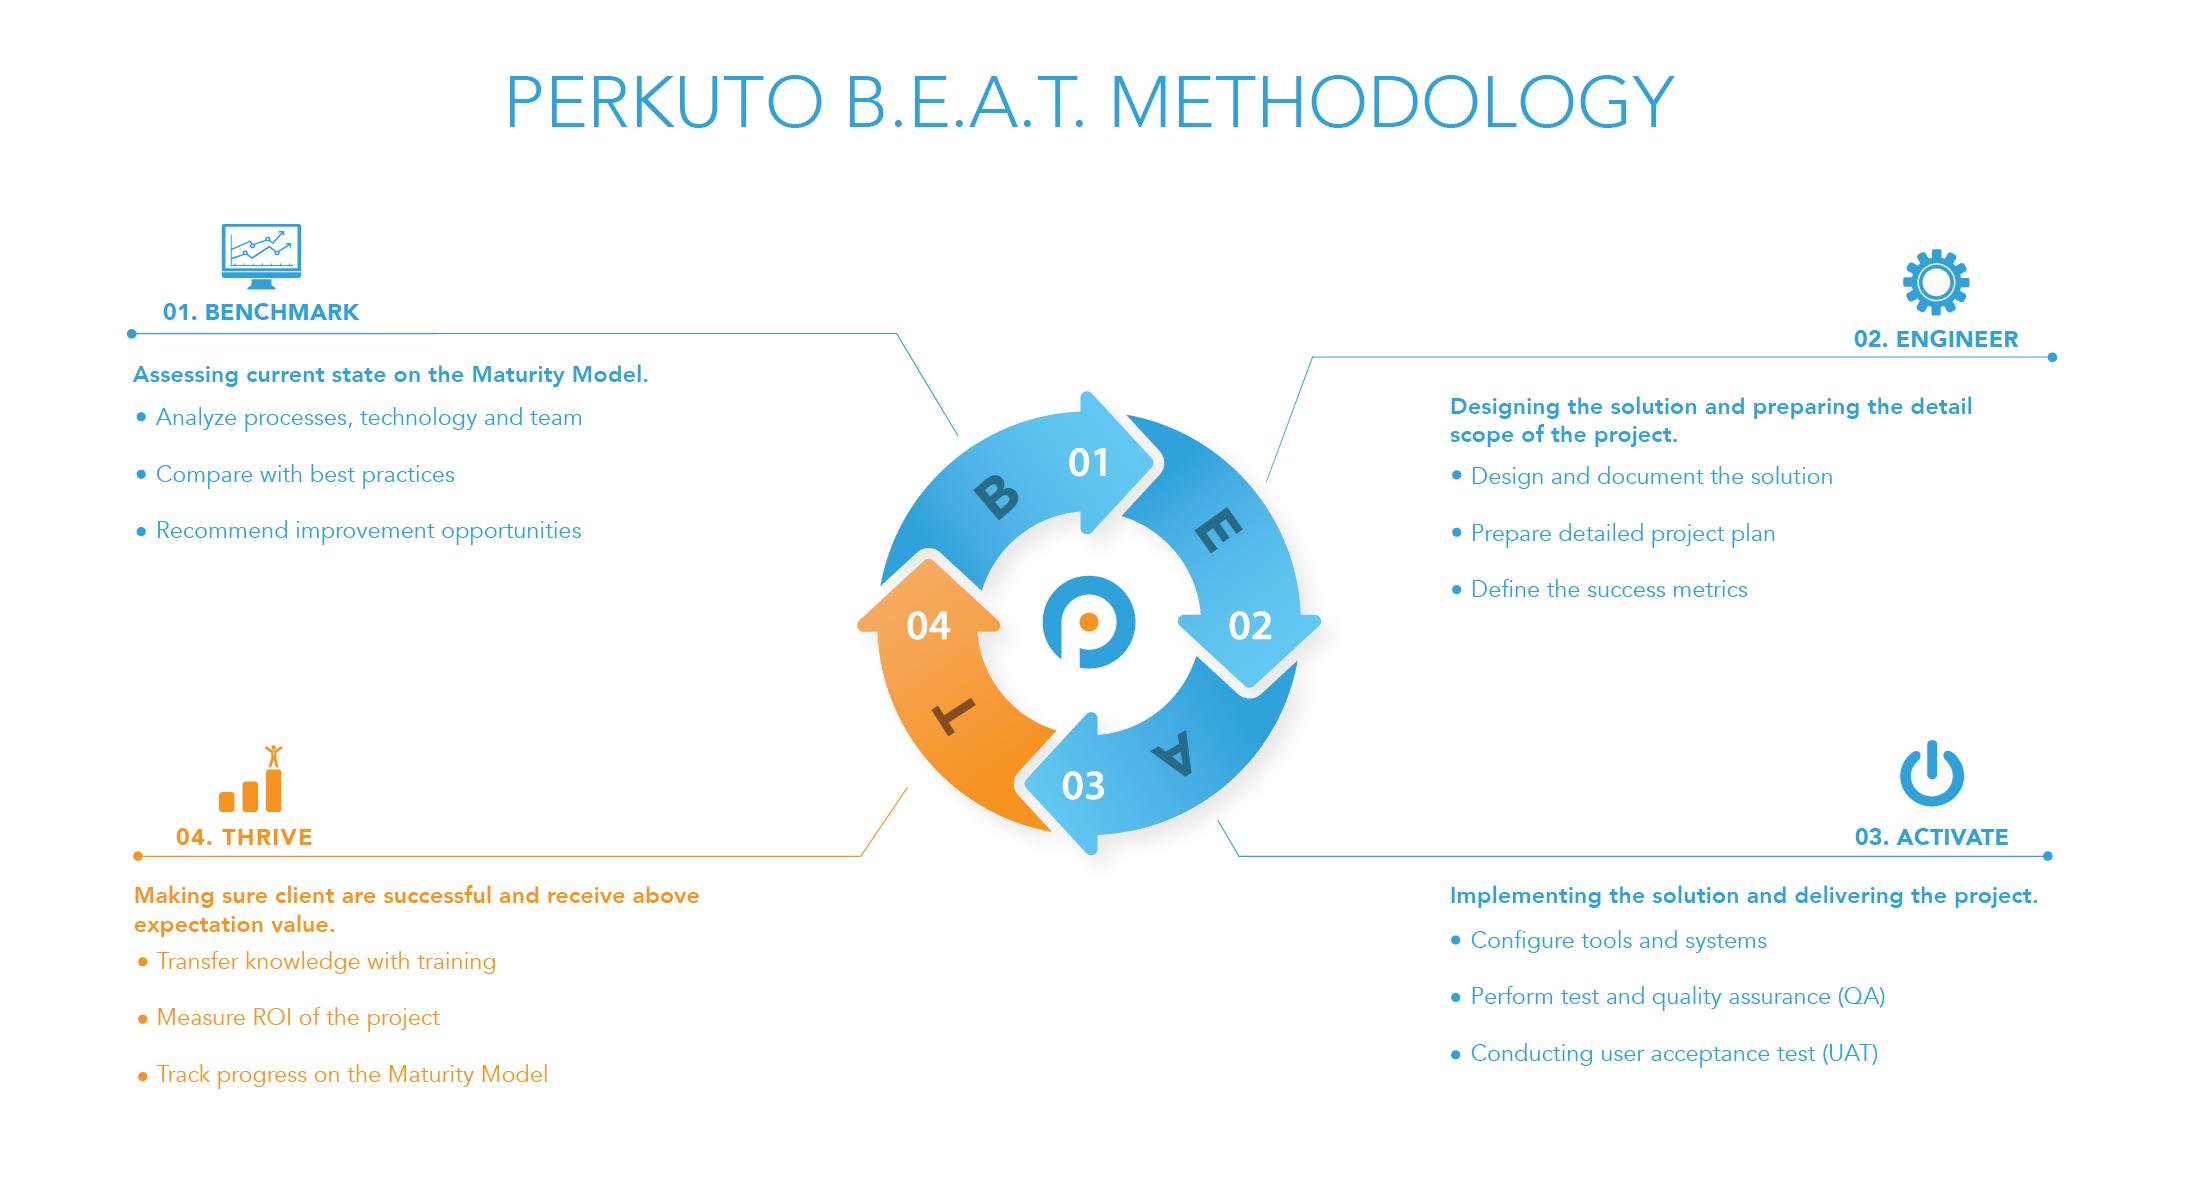 Perkuto Demo - Perkuto BEAT Methodology